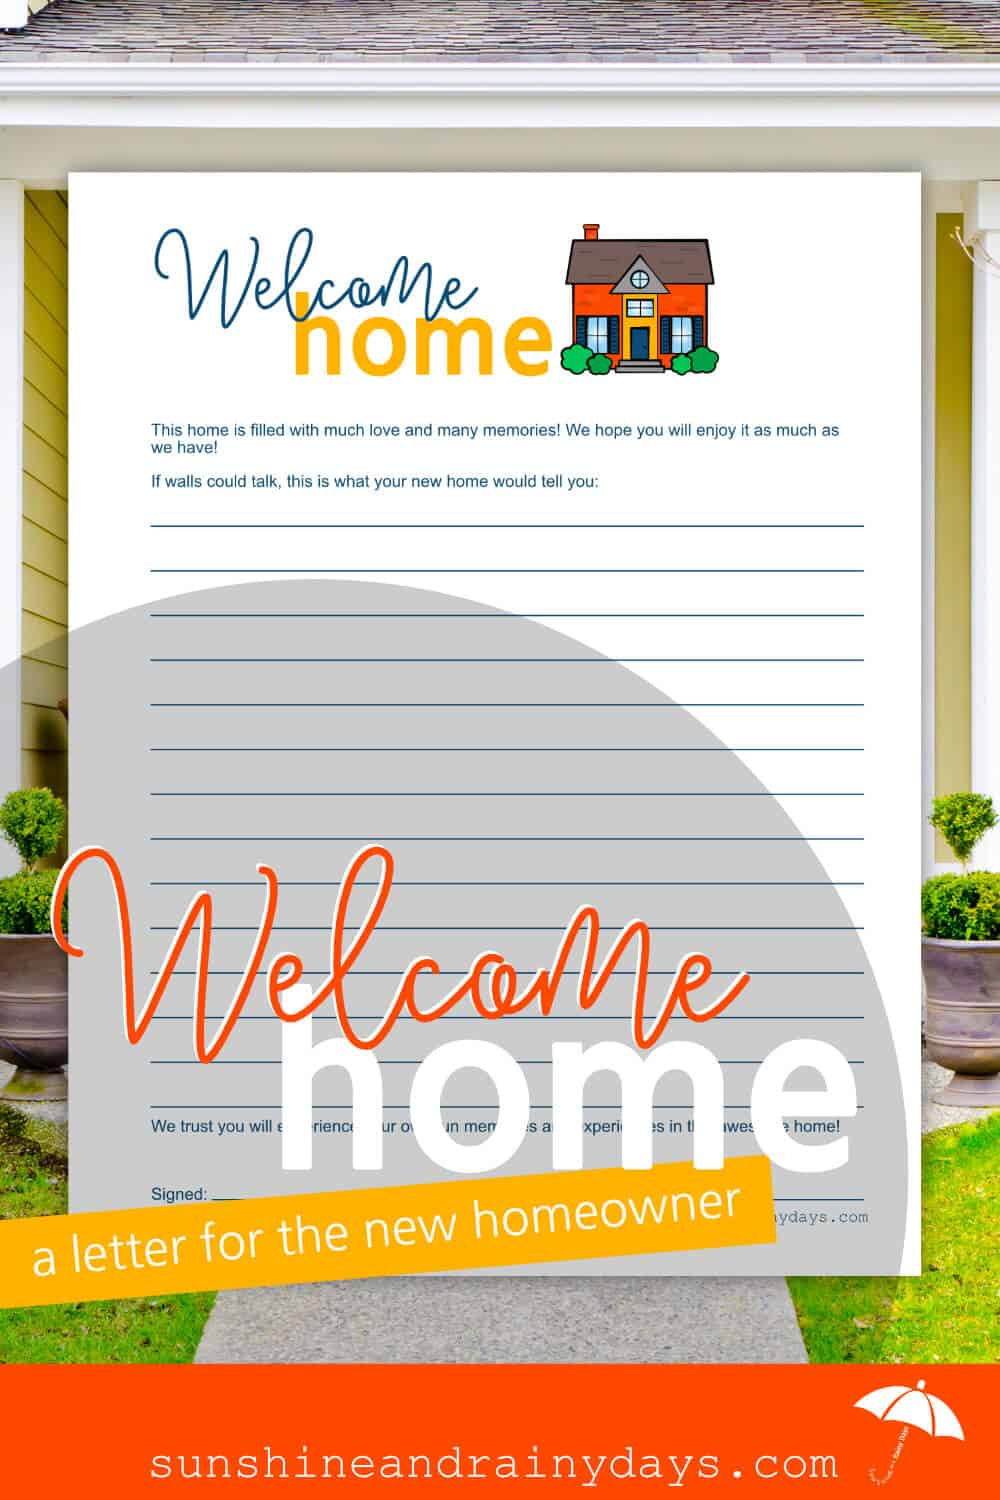 If you have sold your house, use this Welcome Home Letter to welcome the buyers to the place you called home!